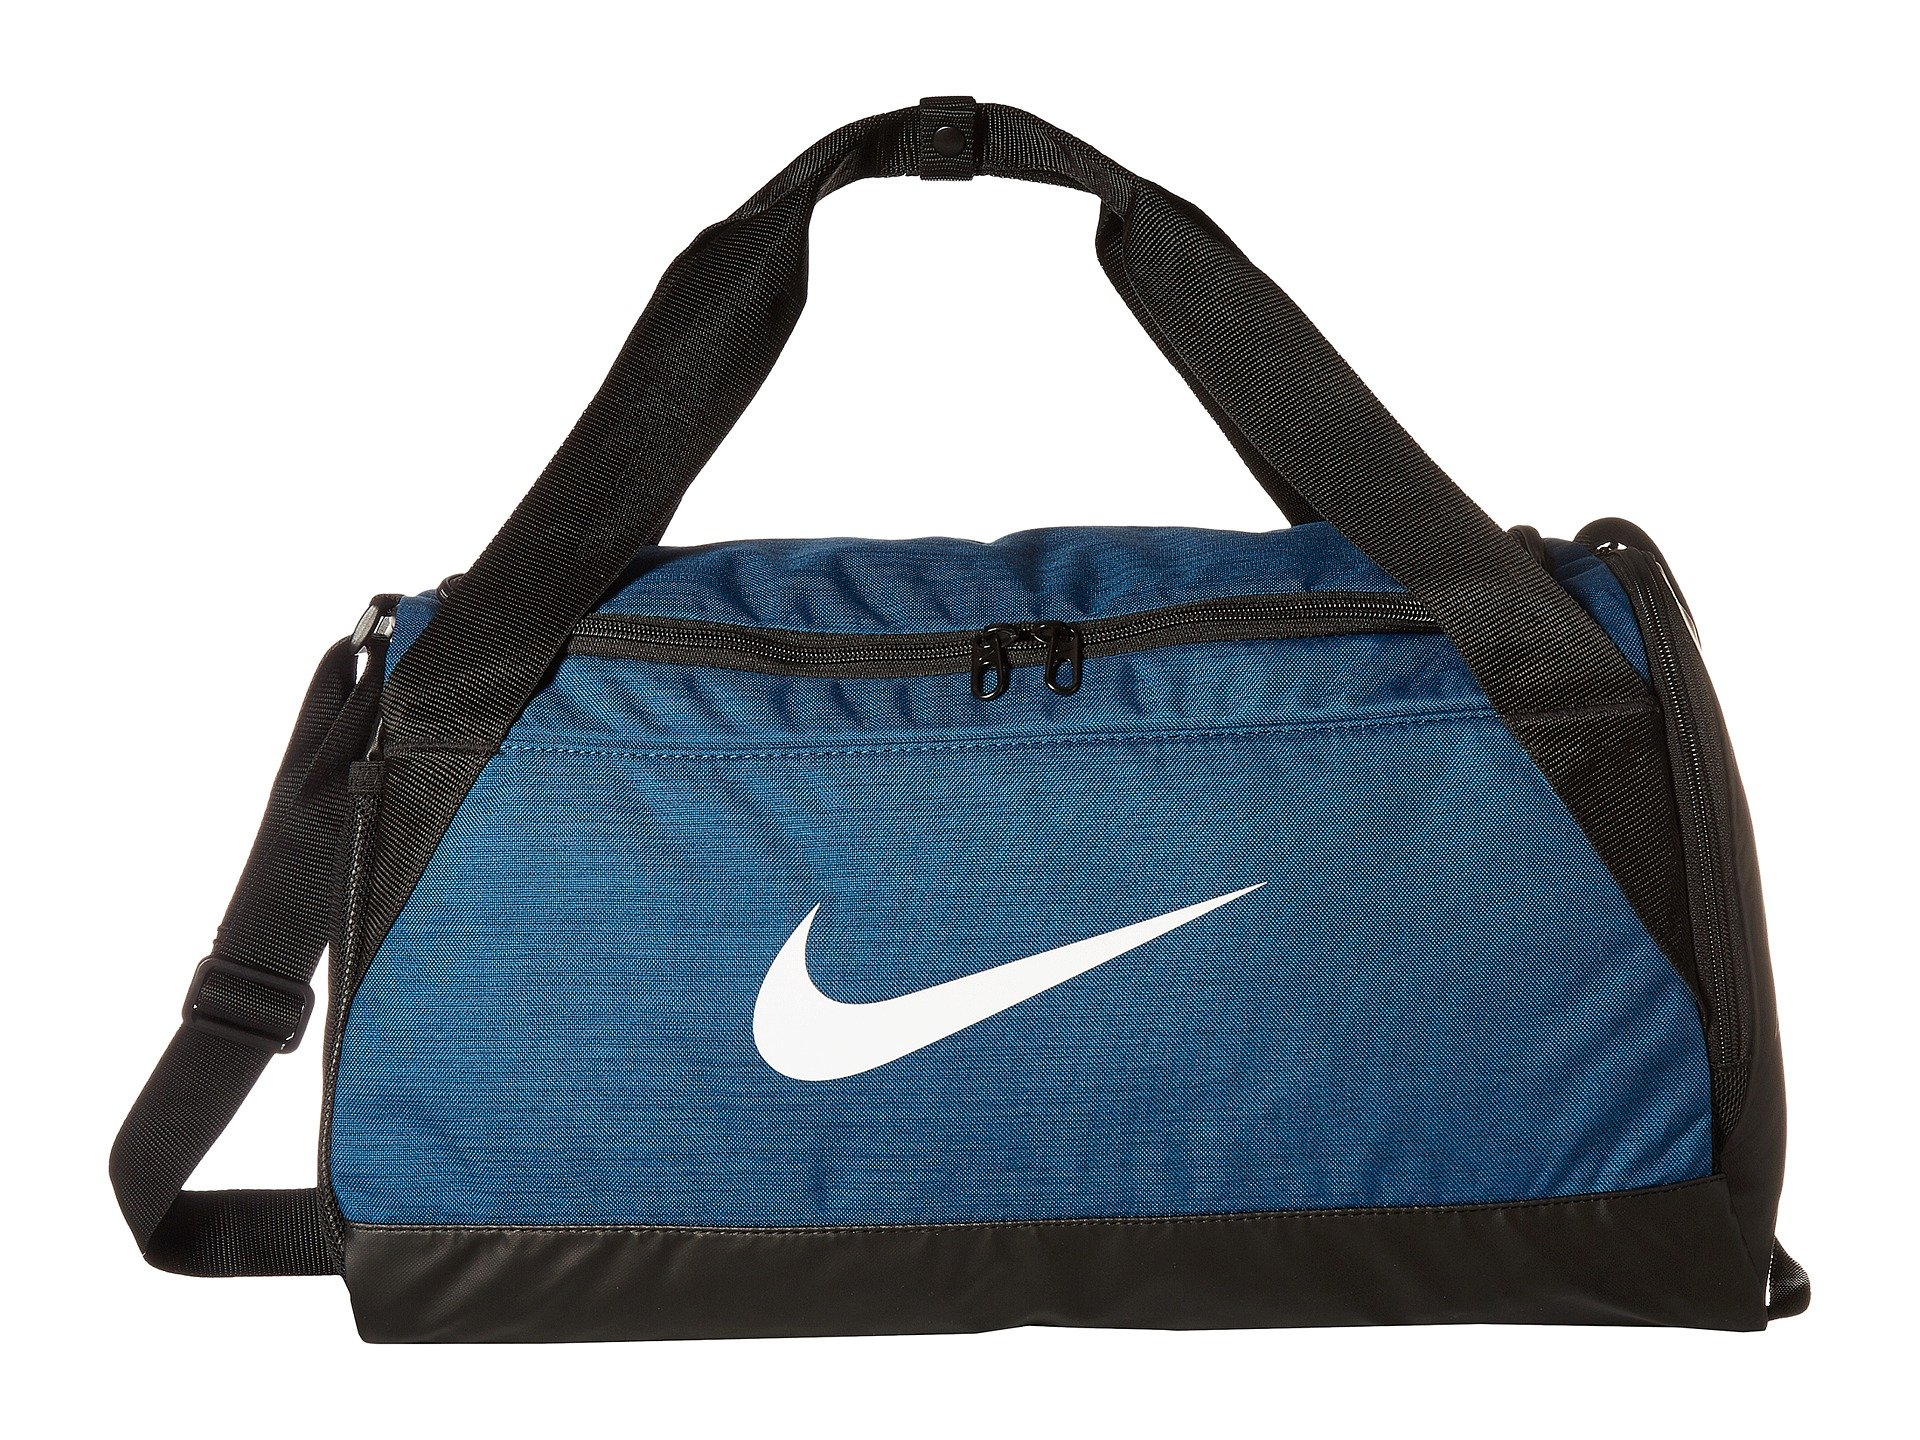 Nike Brasilia 7 Small Duffel Bag Blue/Black